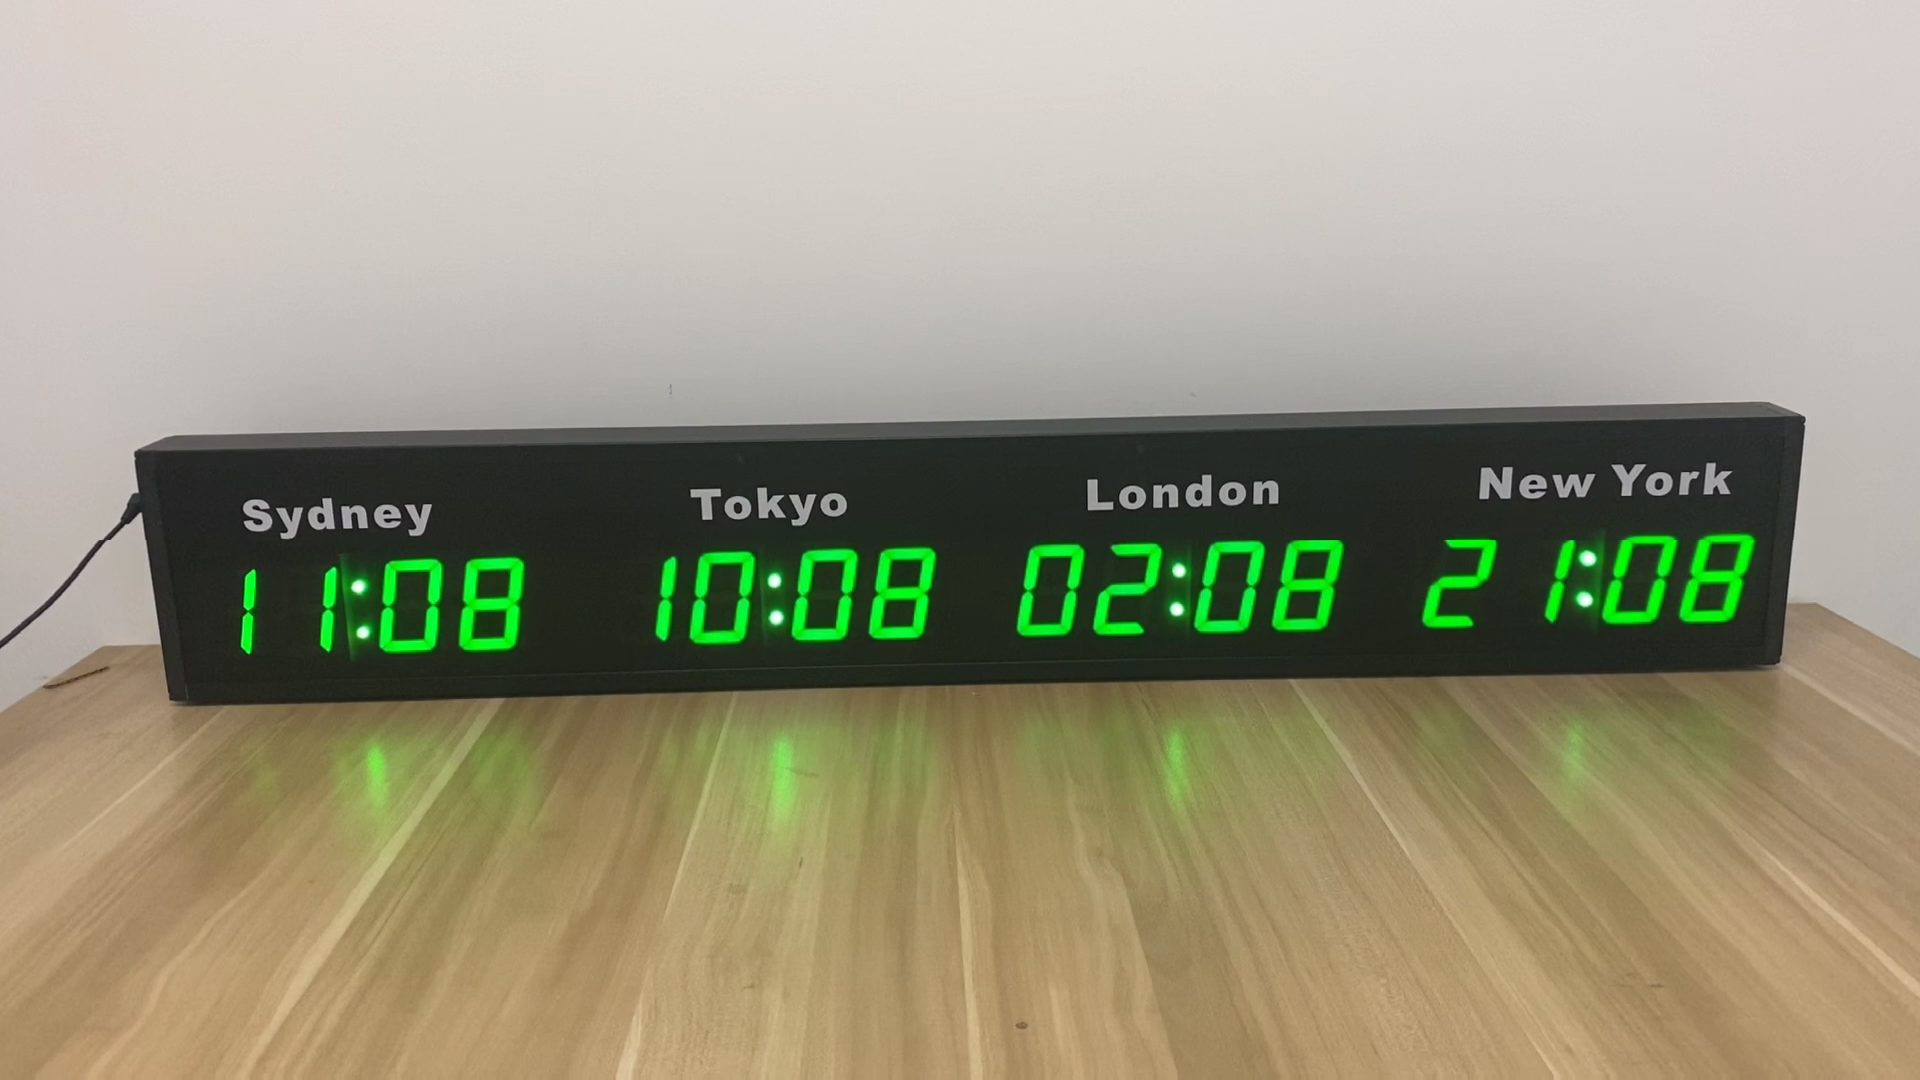 USB Cable Wall Hanging City Time Zones Display LED Digital World Clock